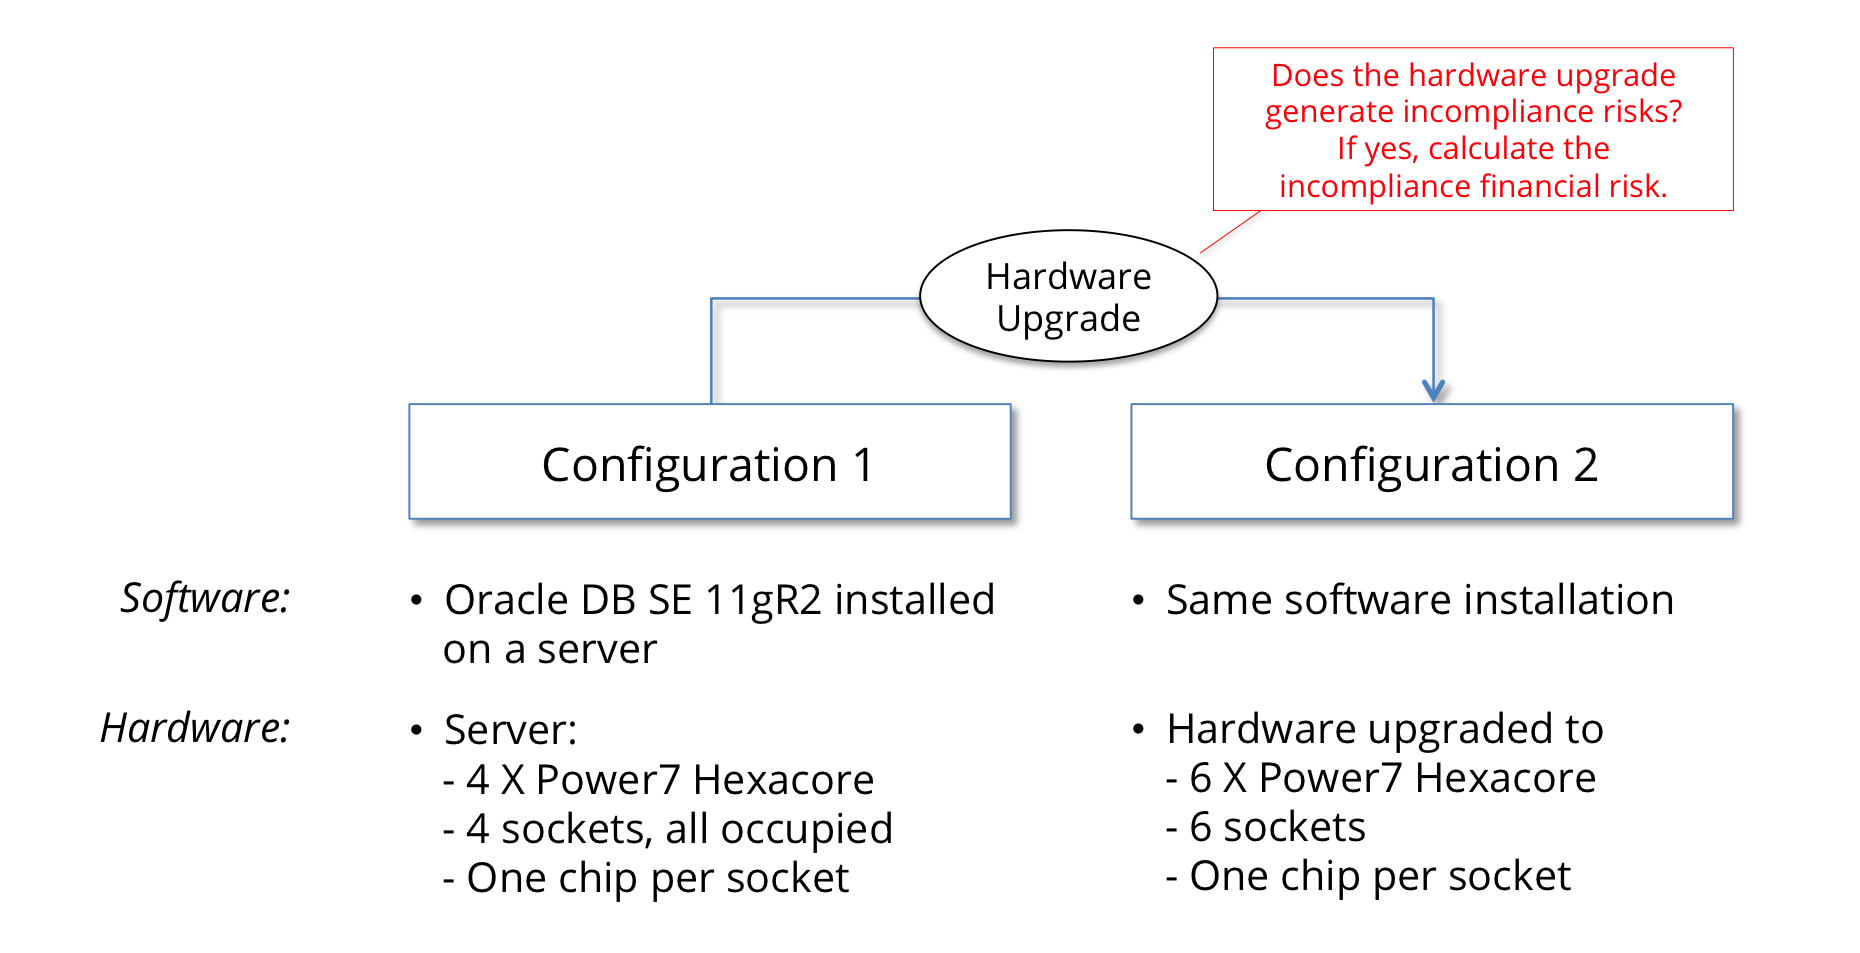 Exhibit 3 - Hardware Migration And Incompliance Risks